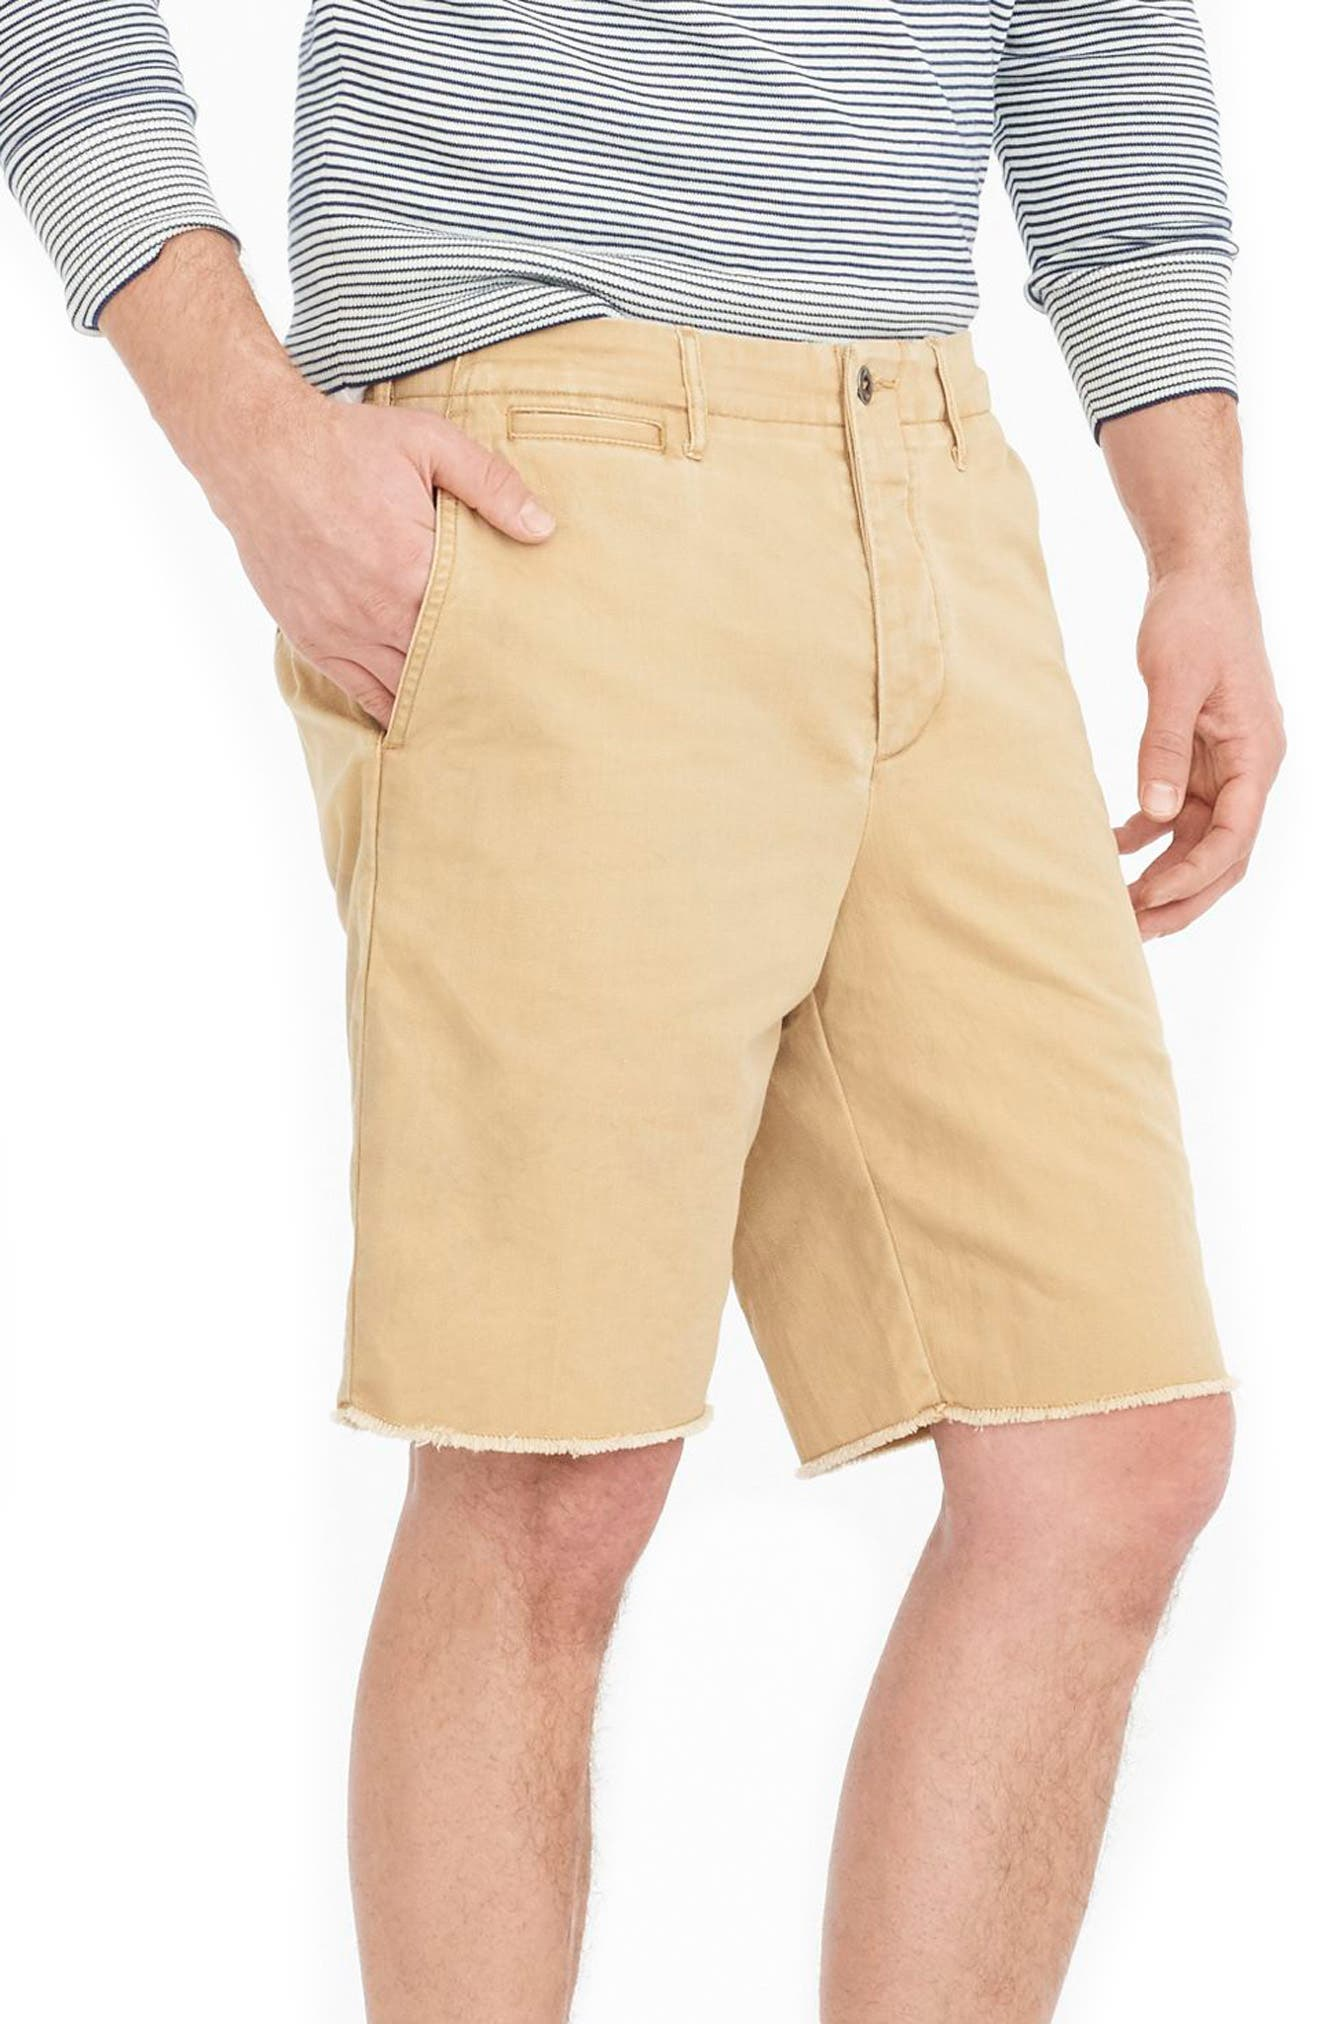 Distressed Officer's Shorts,                             Alternate thumbnail 3, color,                             251